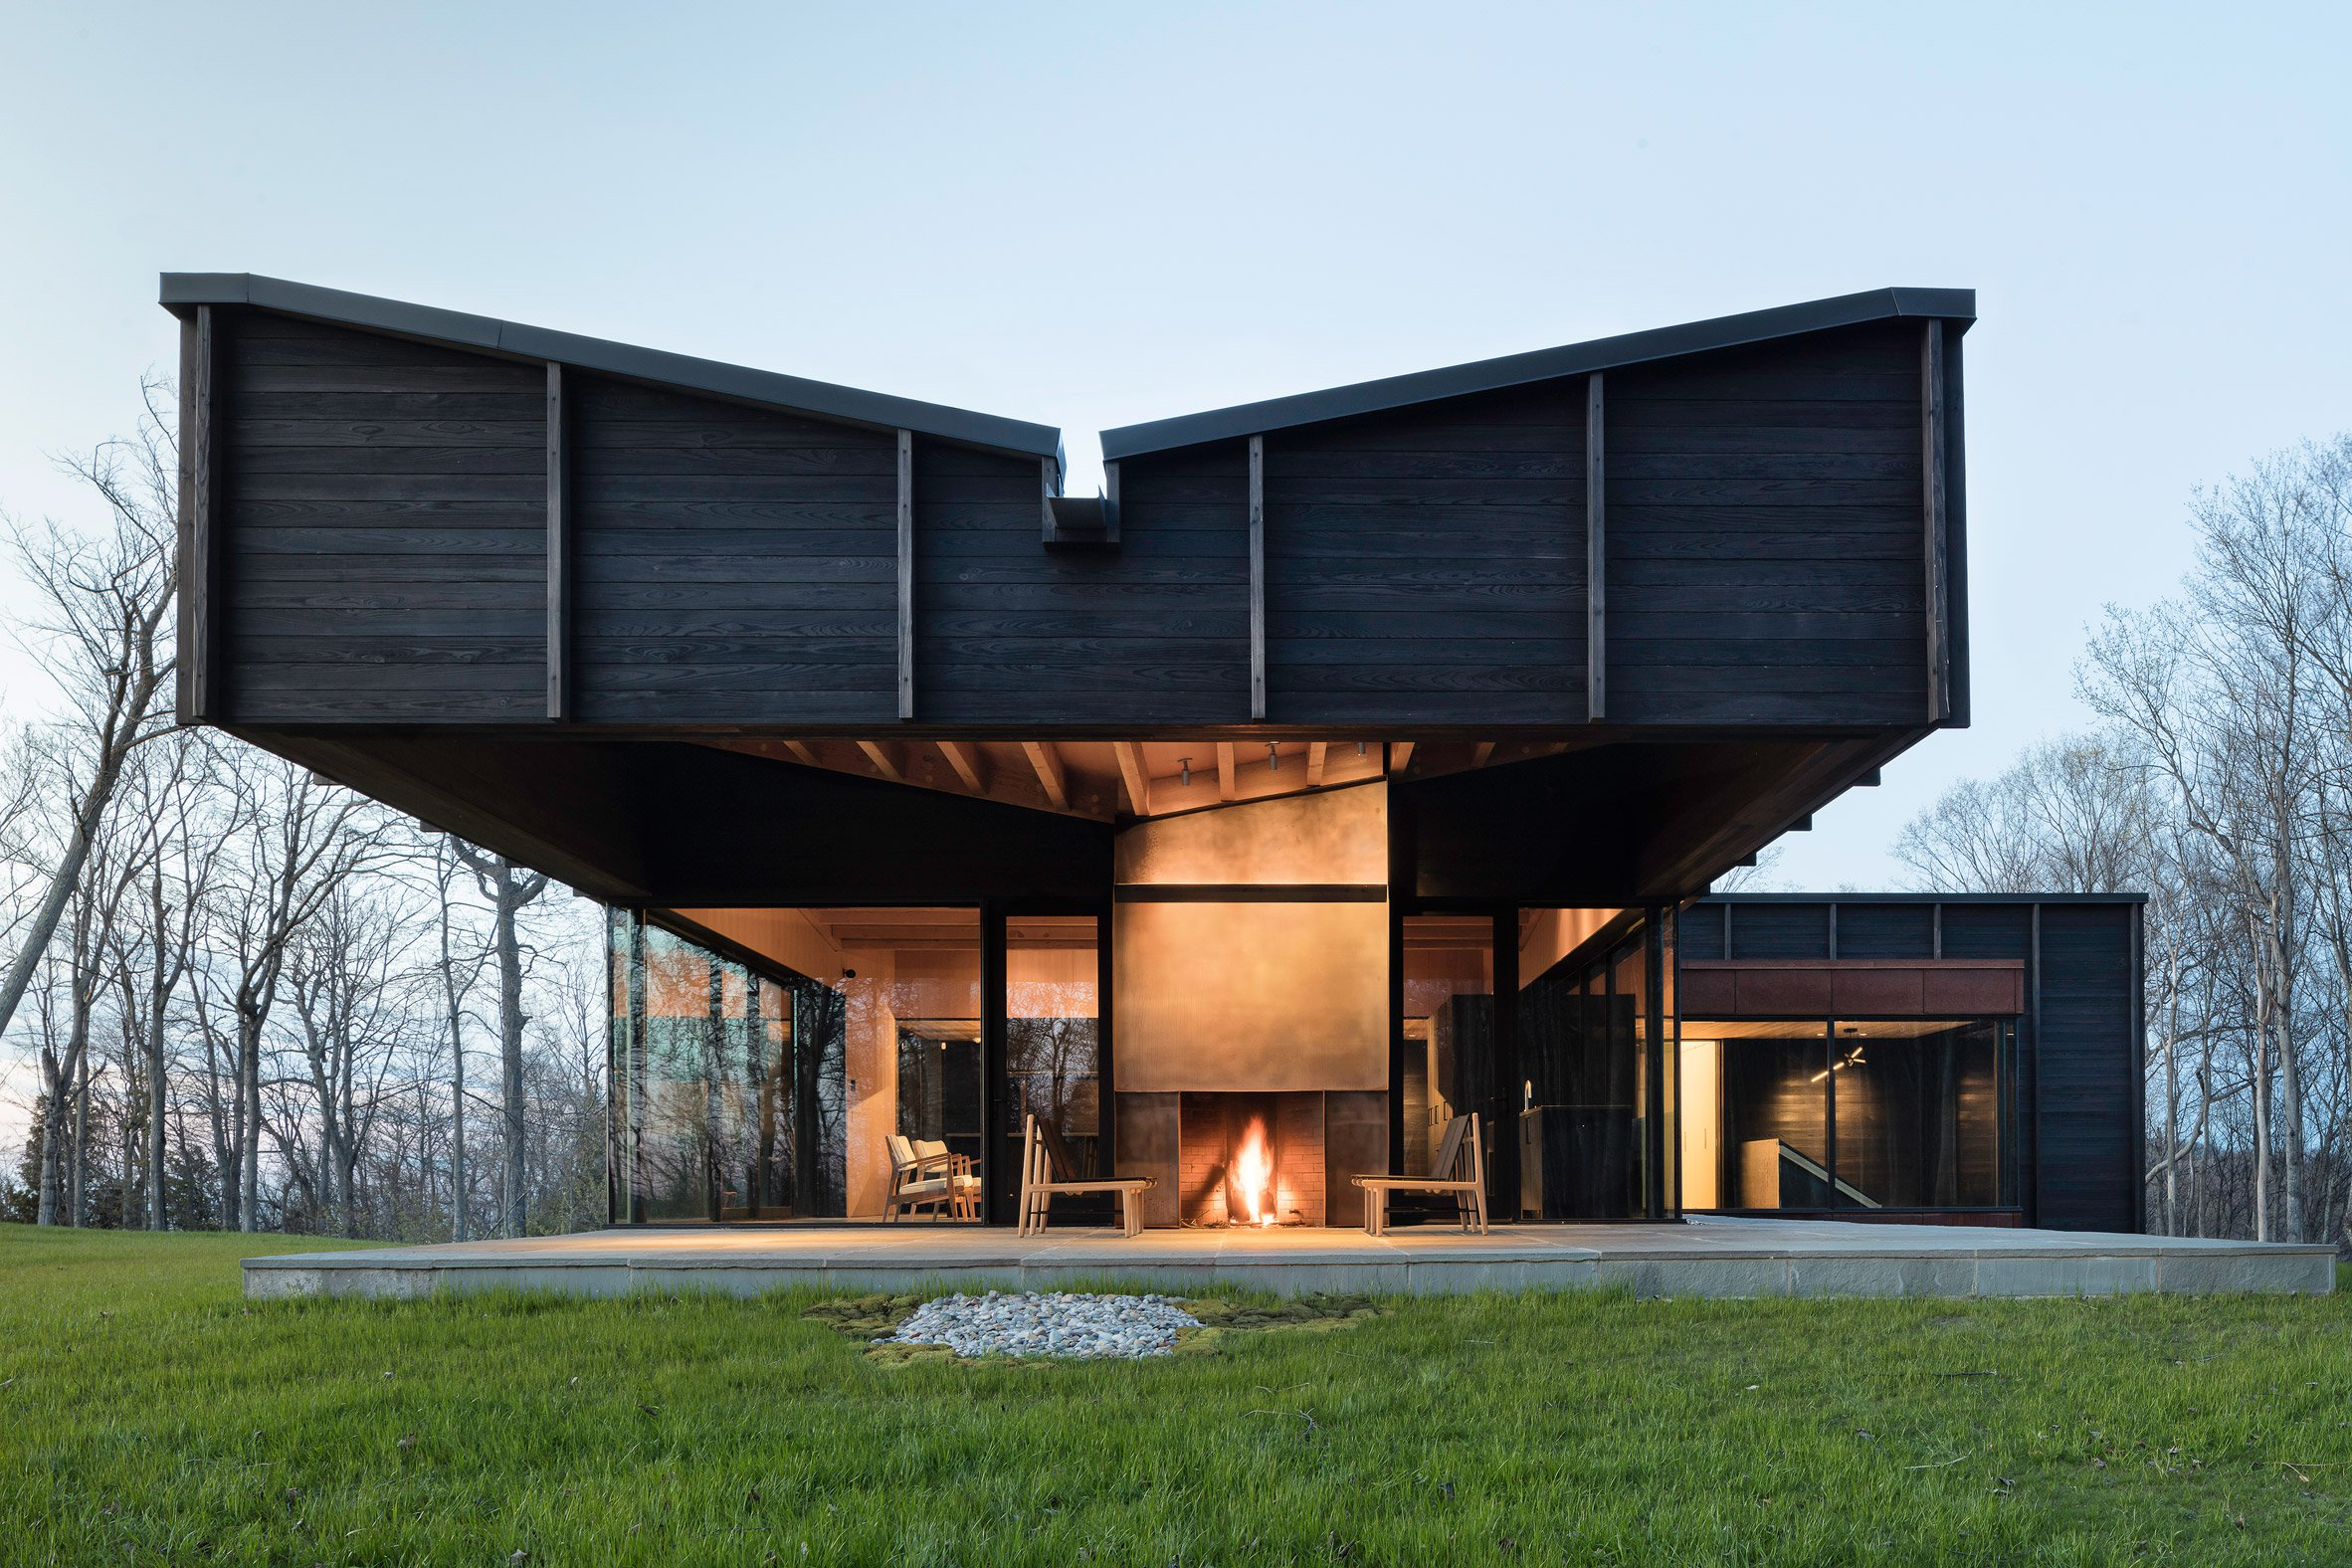 Desai Chia's Michigan Lake House features a roof that cantilevers over a patio